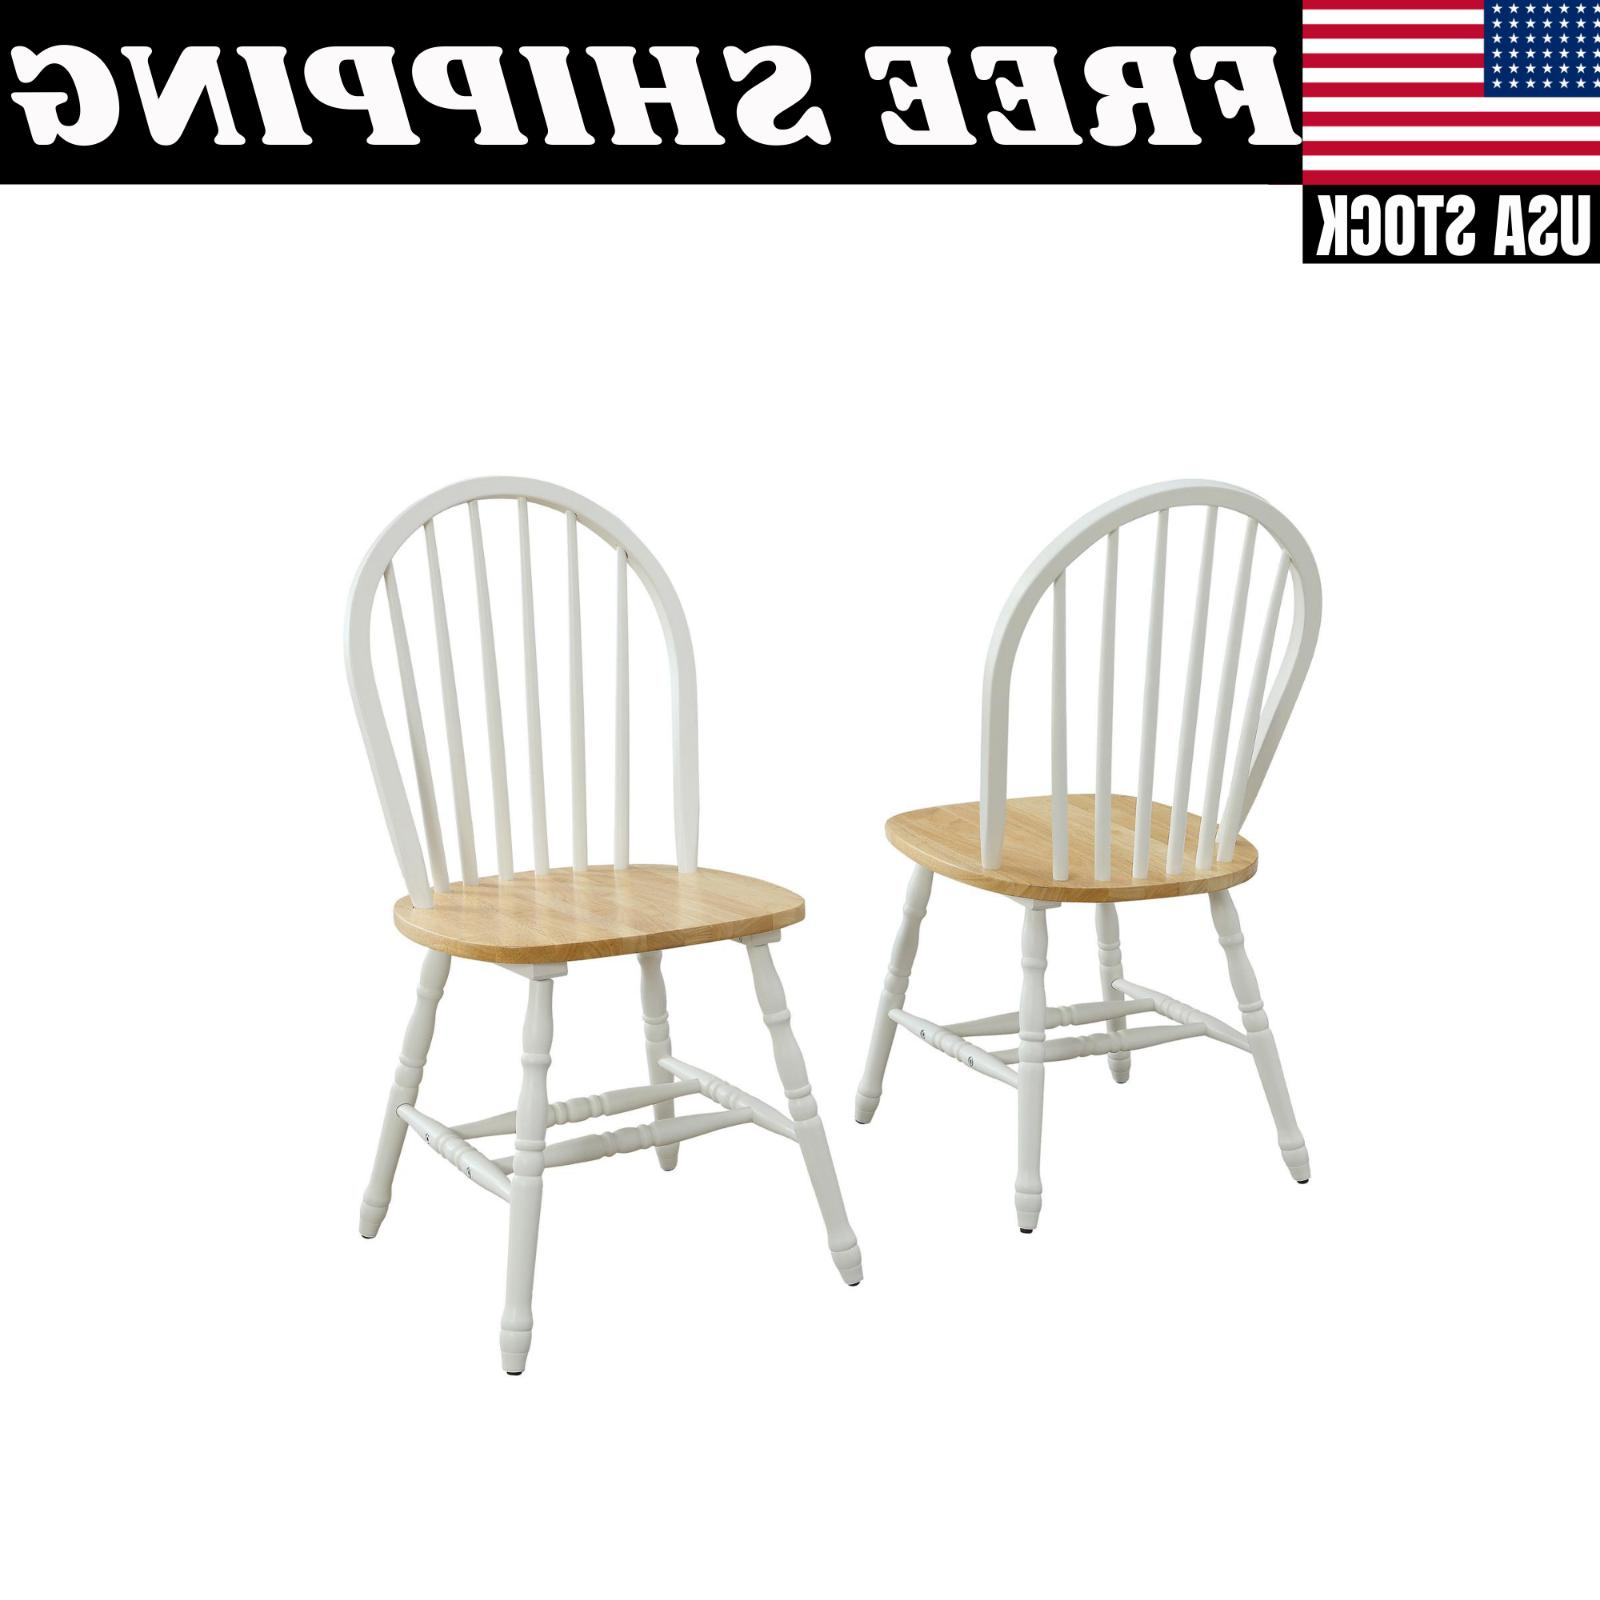 Set Of 2 Autumn Lane Windsor Solid Wood Dining Chairs, White